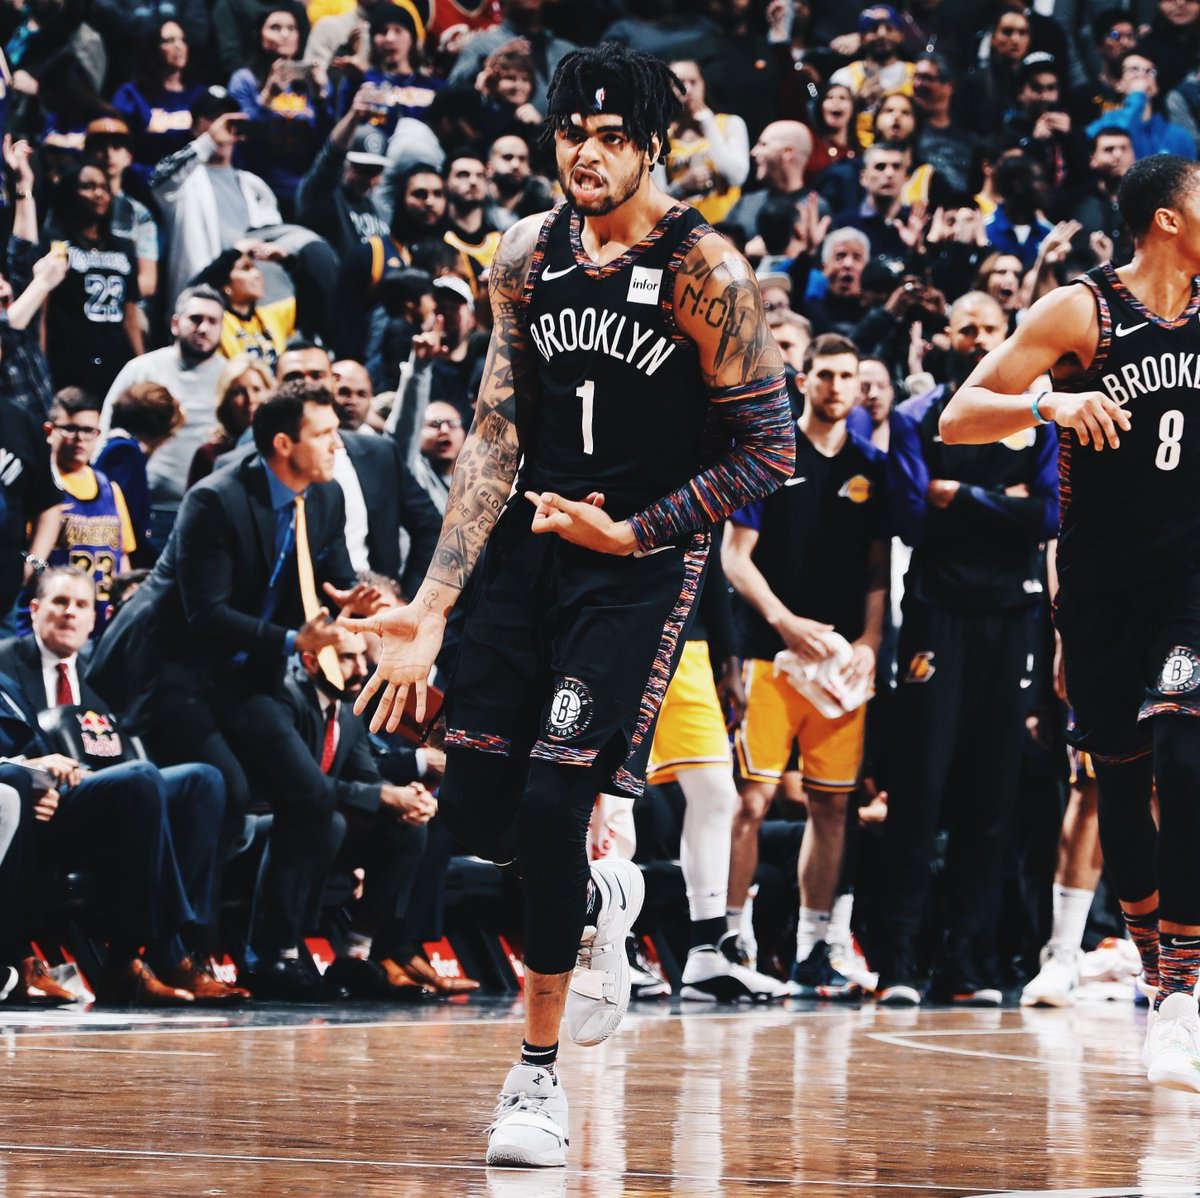 """In 2017, Magic Johnson said the Lakers """"needed a leader"""" and traded D-Lo.  Russell this year: - Career-high PPG (19.6) - Career-high AST (6.4) - Nets in the playoff race - First All-Star berth"""